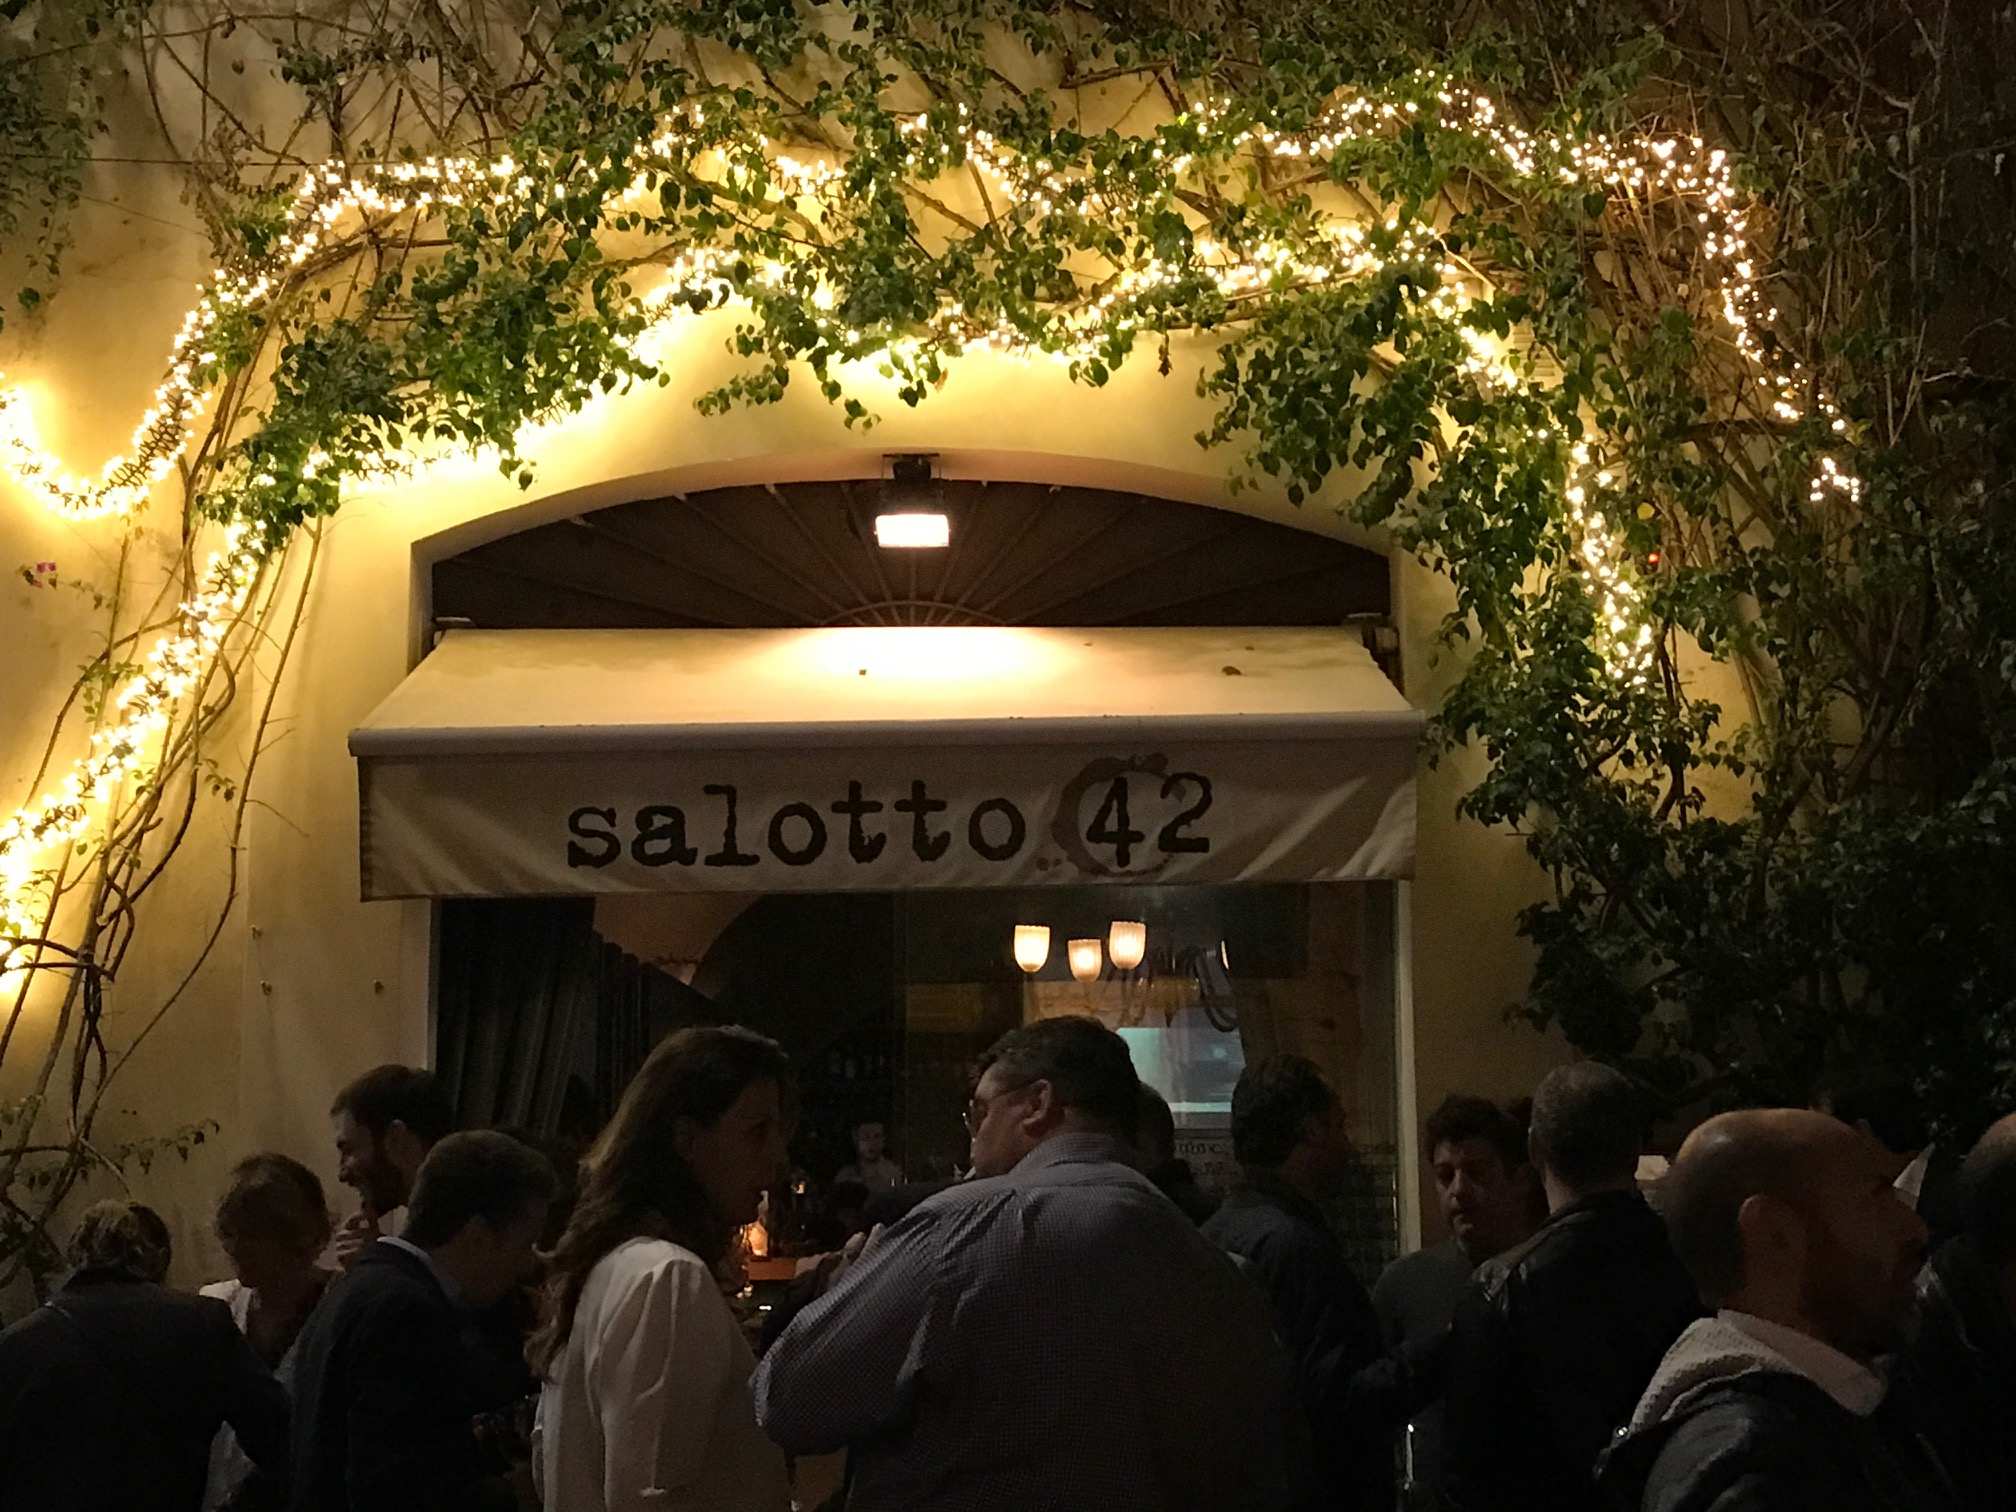 Cocktail bar in Rome -Salotto 42